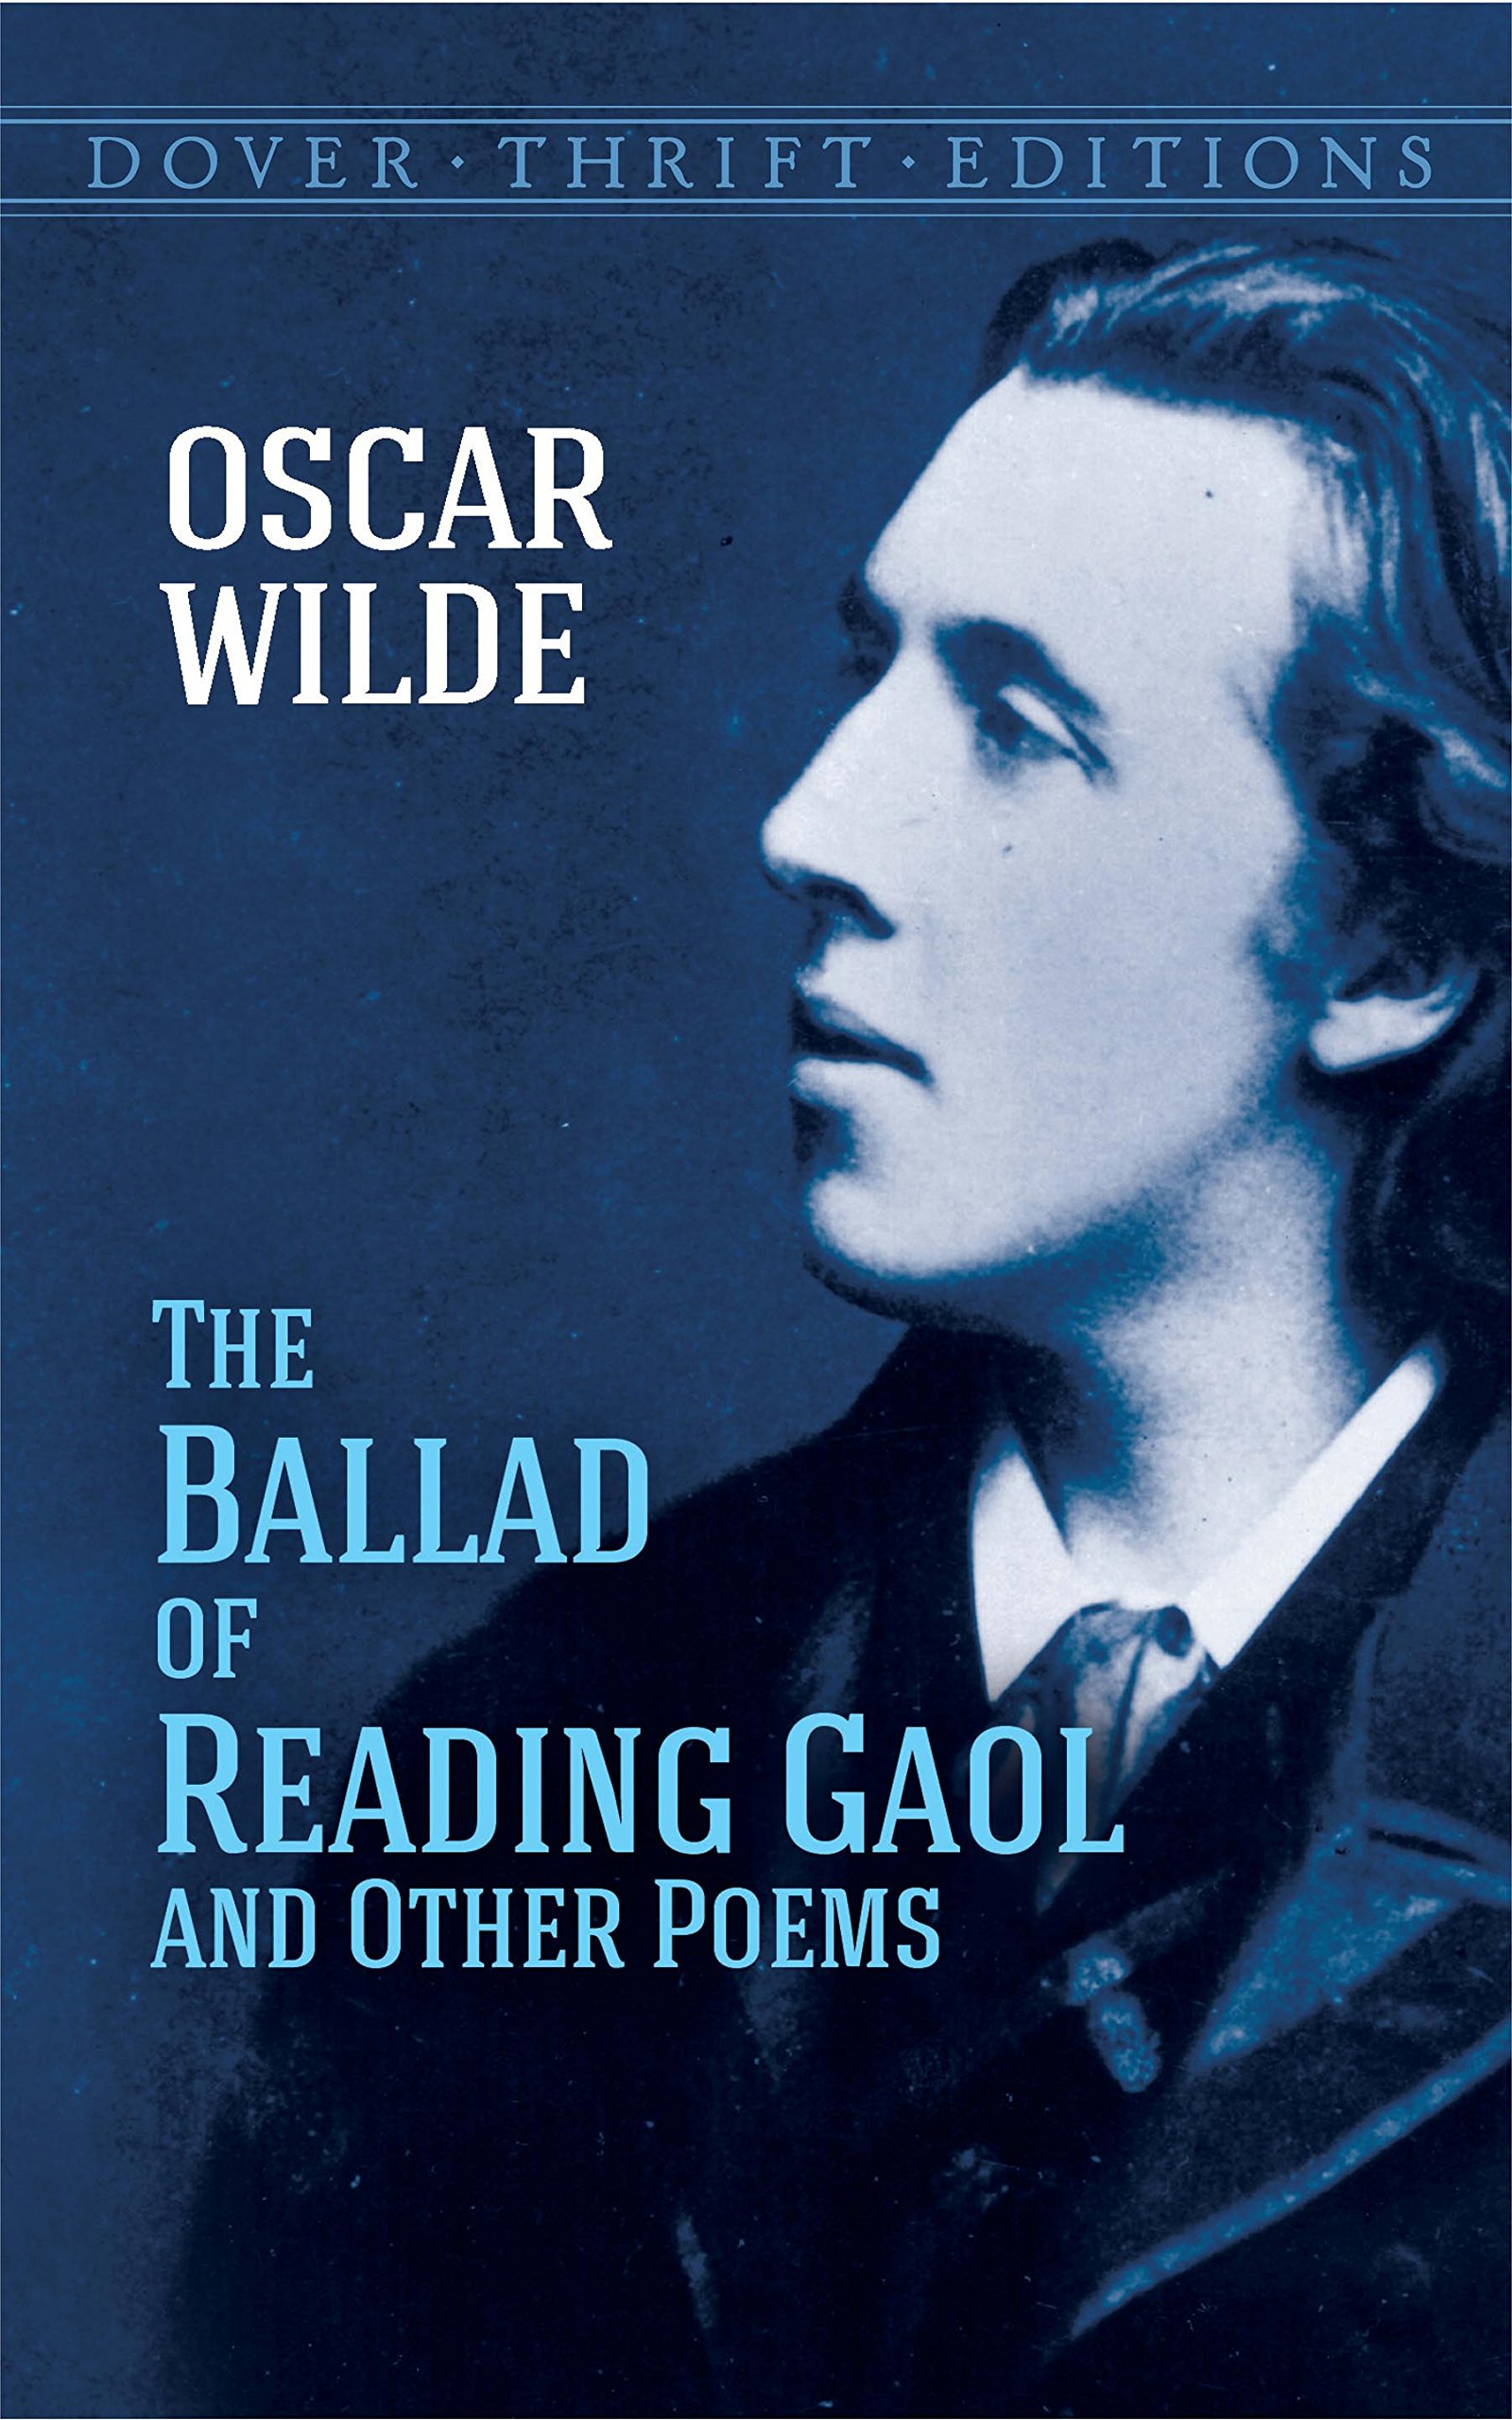 The Ballad of Reading Gaol and Other Poems (Dover Thrift Editions) ebook